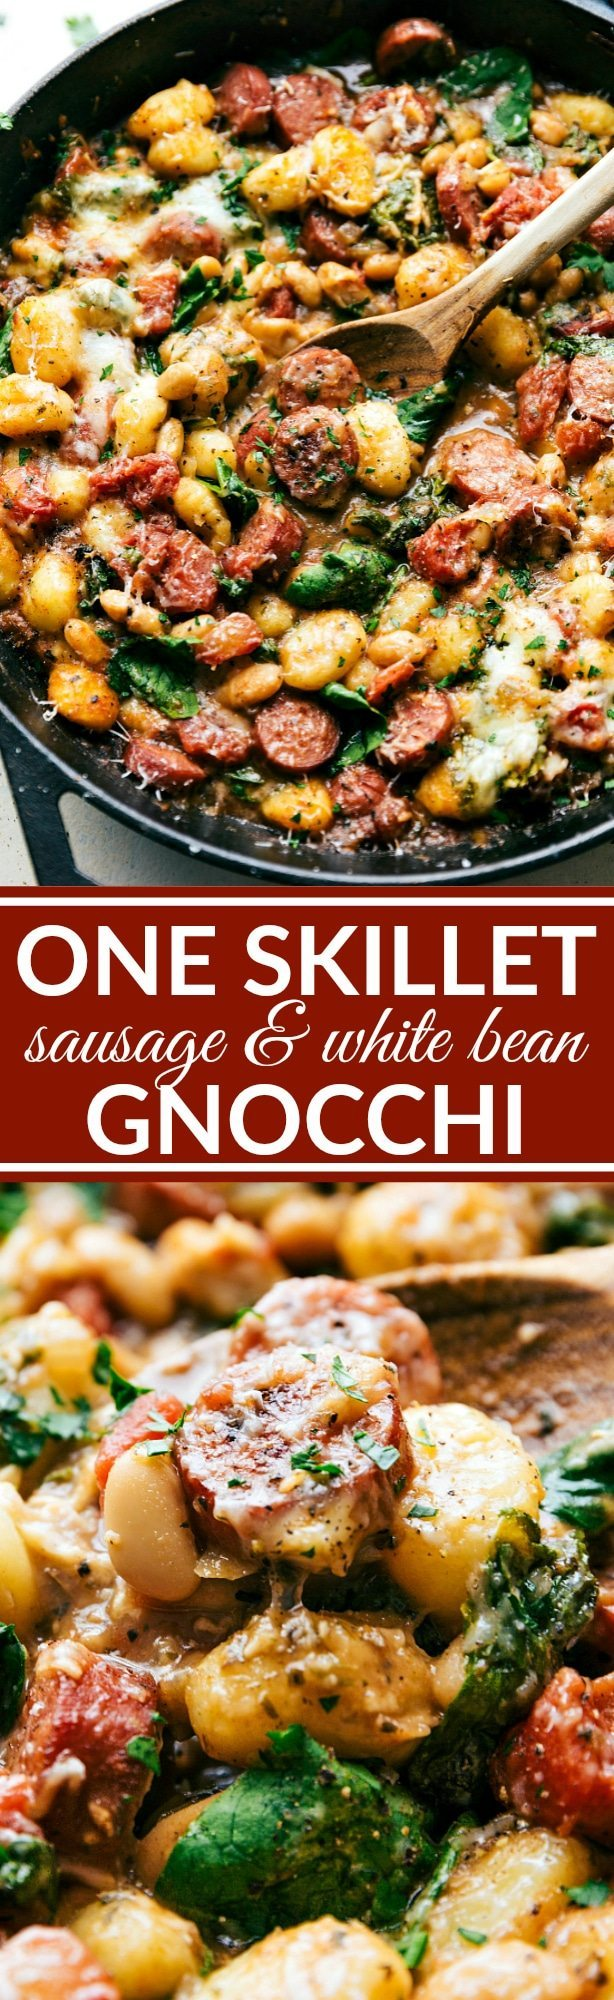 Only ONE skillet needed for a delicious 30 minute dinner recipe. Garlic, onion,sausage, white beans, gnocchi, tomatoes, and spinach plus spices and cheese mix together to make an incredible dinner in thirty minutes. Recipe via chelseasmessyapron.com